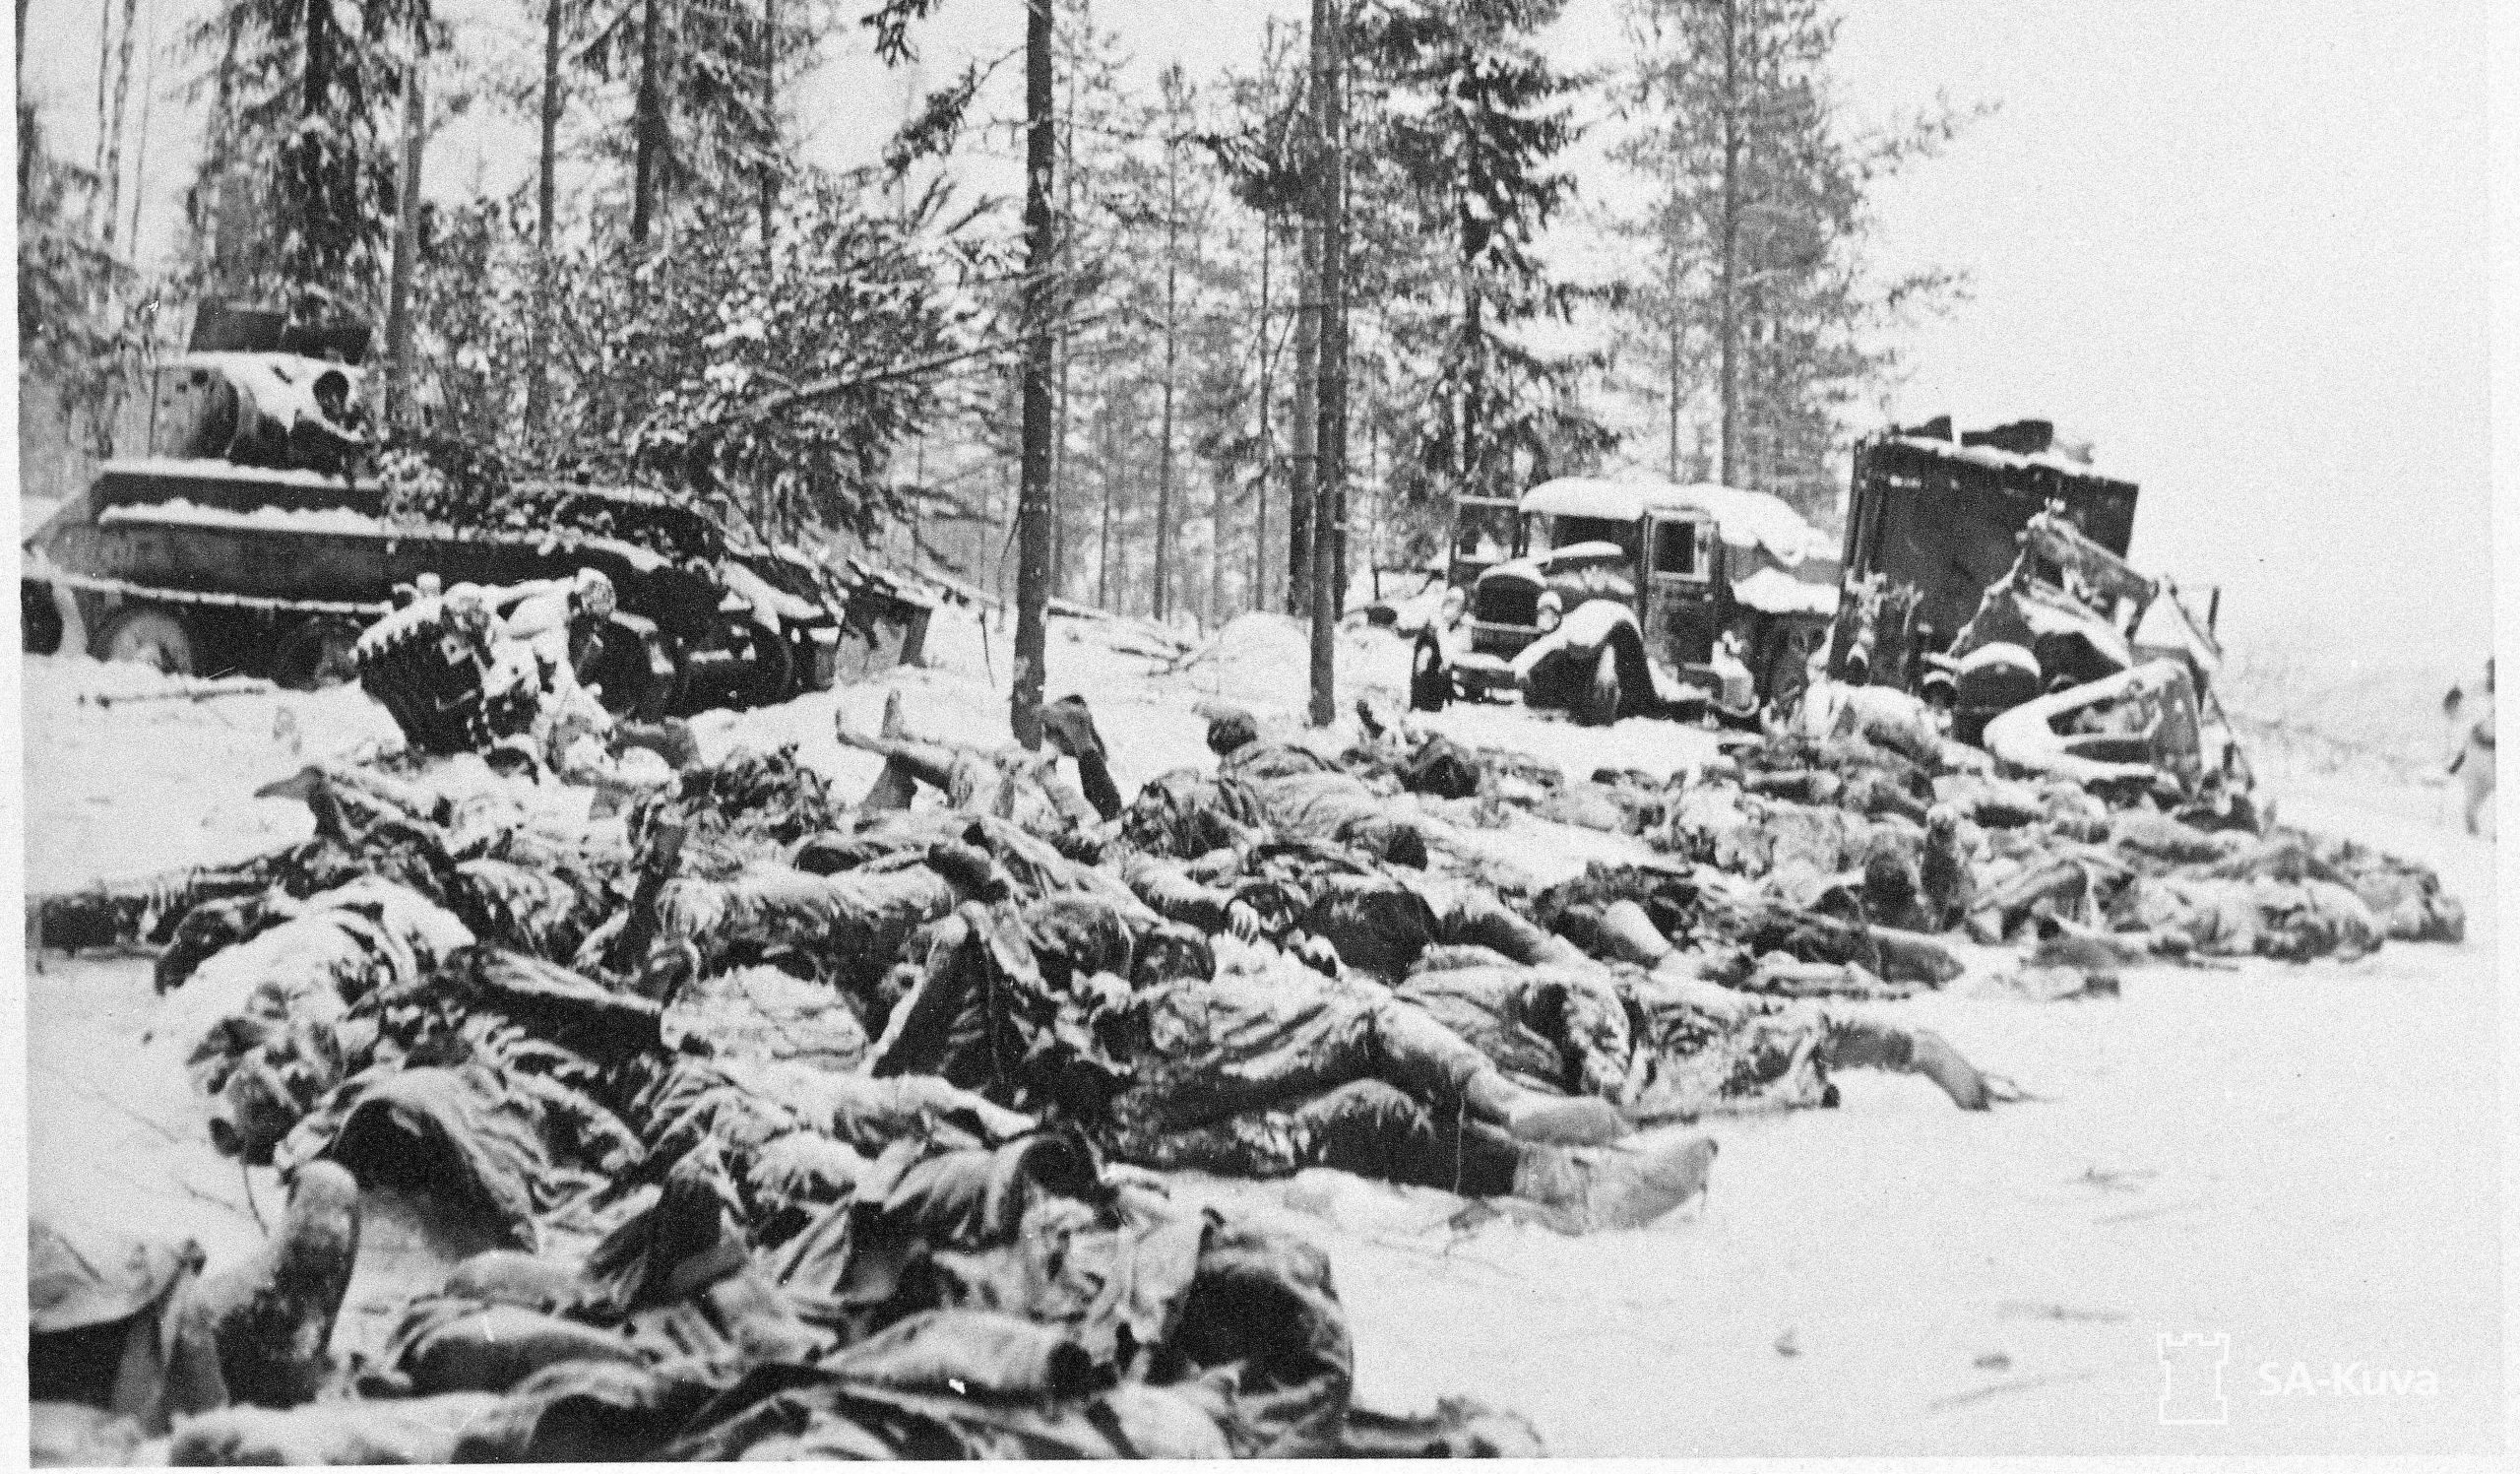 What were the Red Army losses during the Winter War?